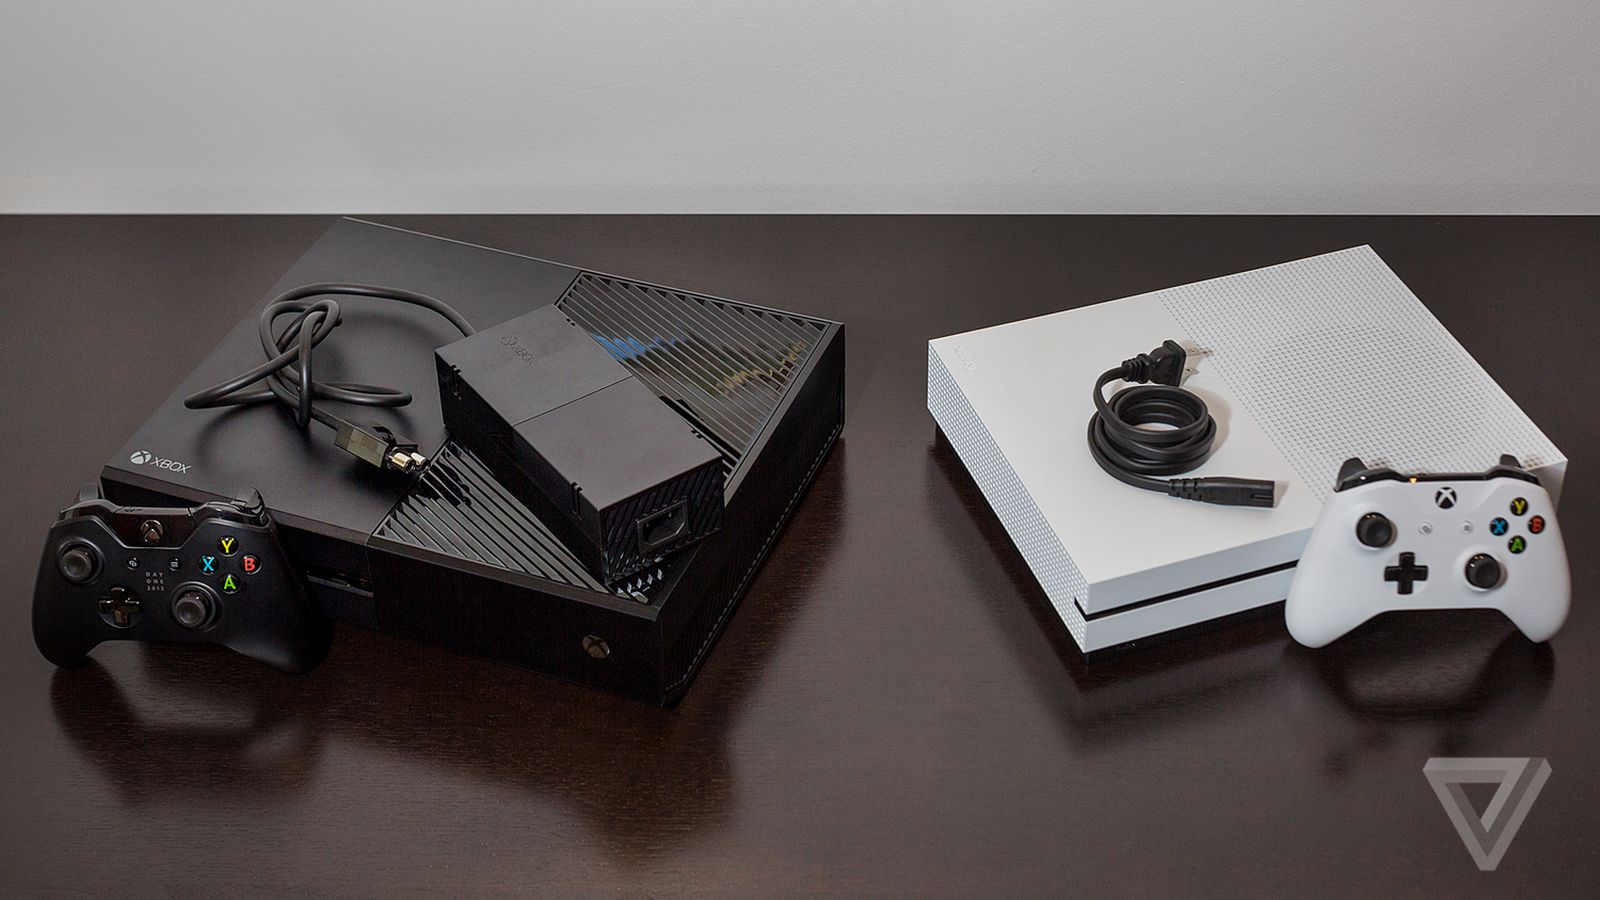 Microsofts New Xbox Finally Ditches The Annoying Power Brick 125v Mini2440 Supply System Schematic Diagram Verge